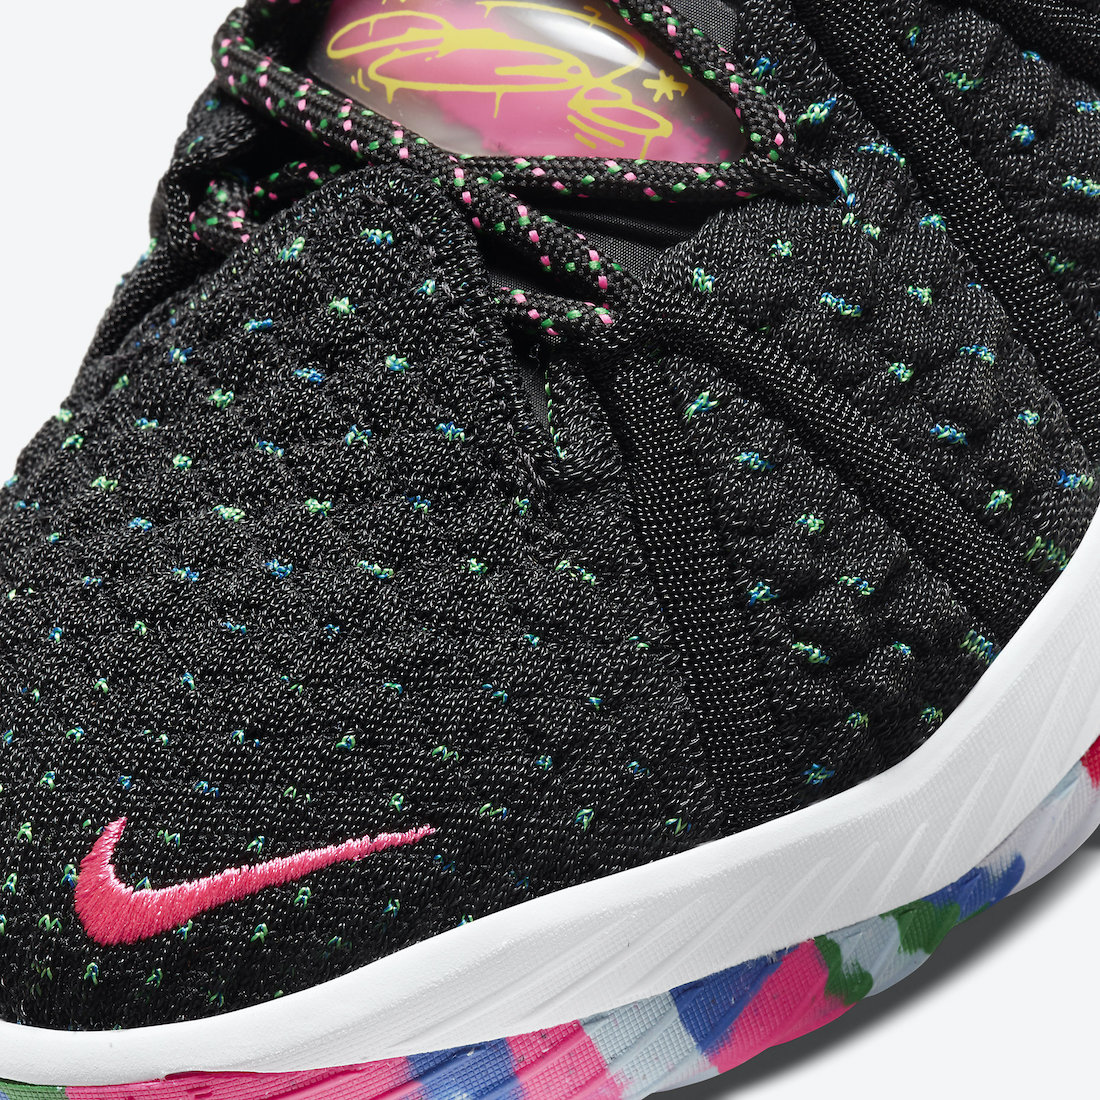 Nike-LeBron-18-James-Gang-Multicolor-CQ9283-002-Release-Date-6